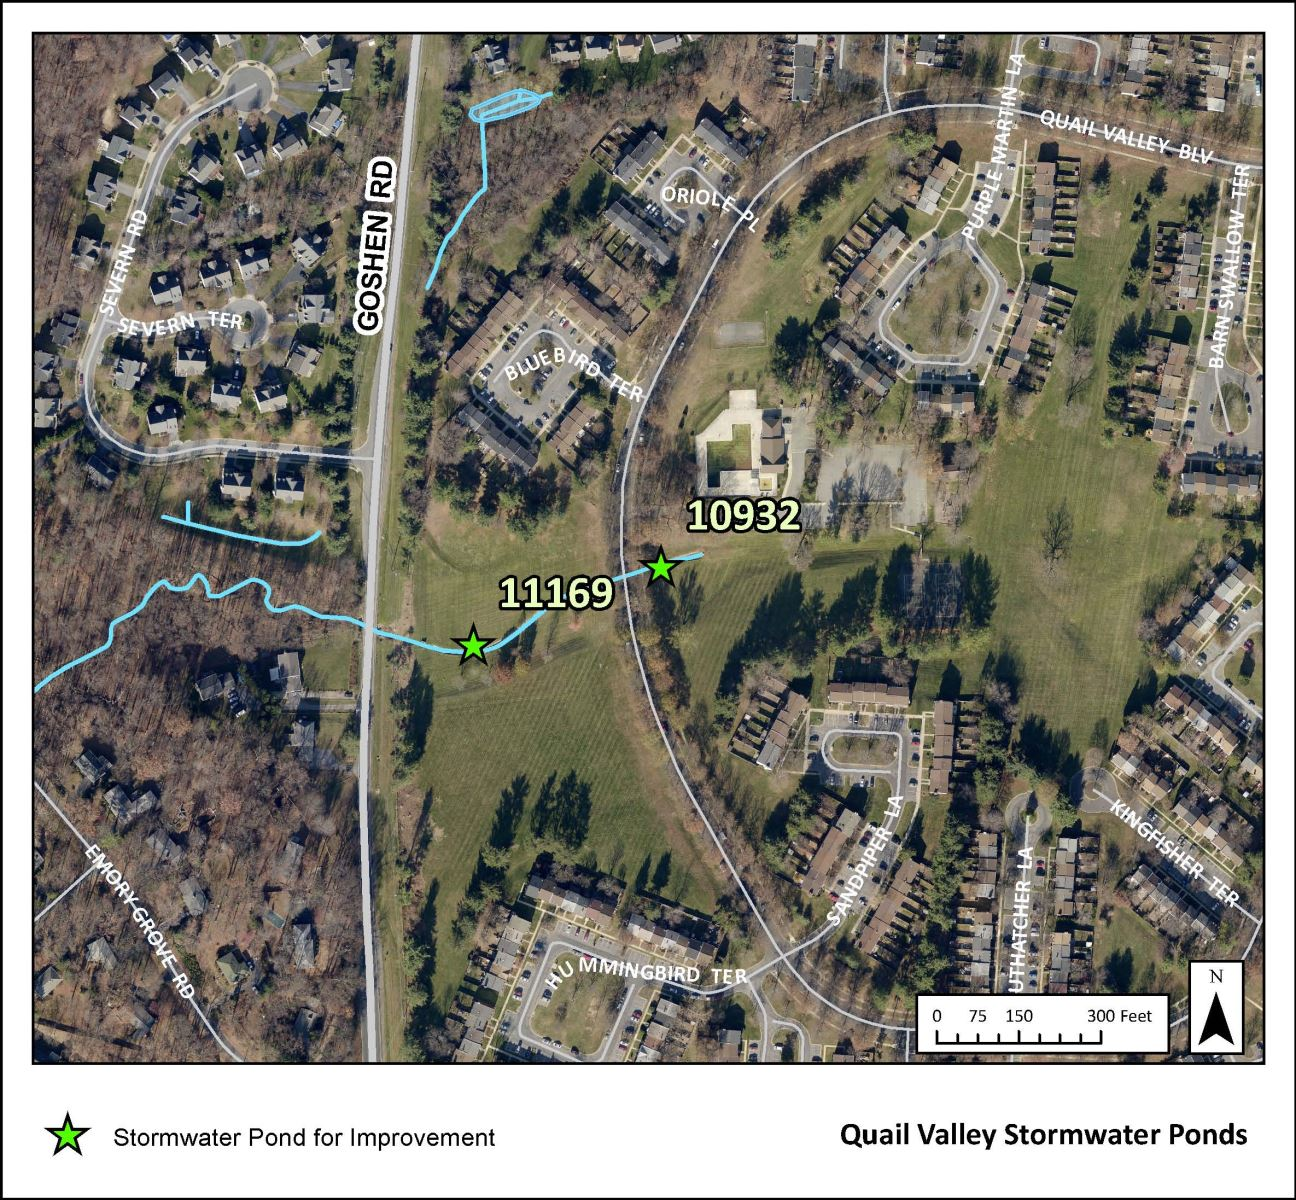 Image of Quail Valley Restoration Area